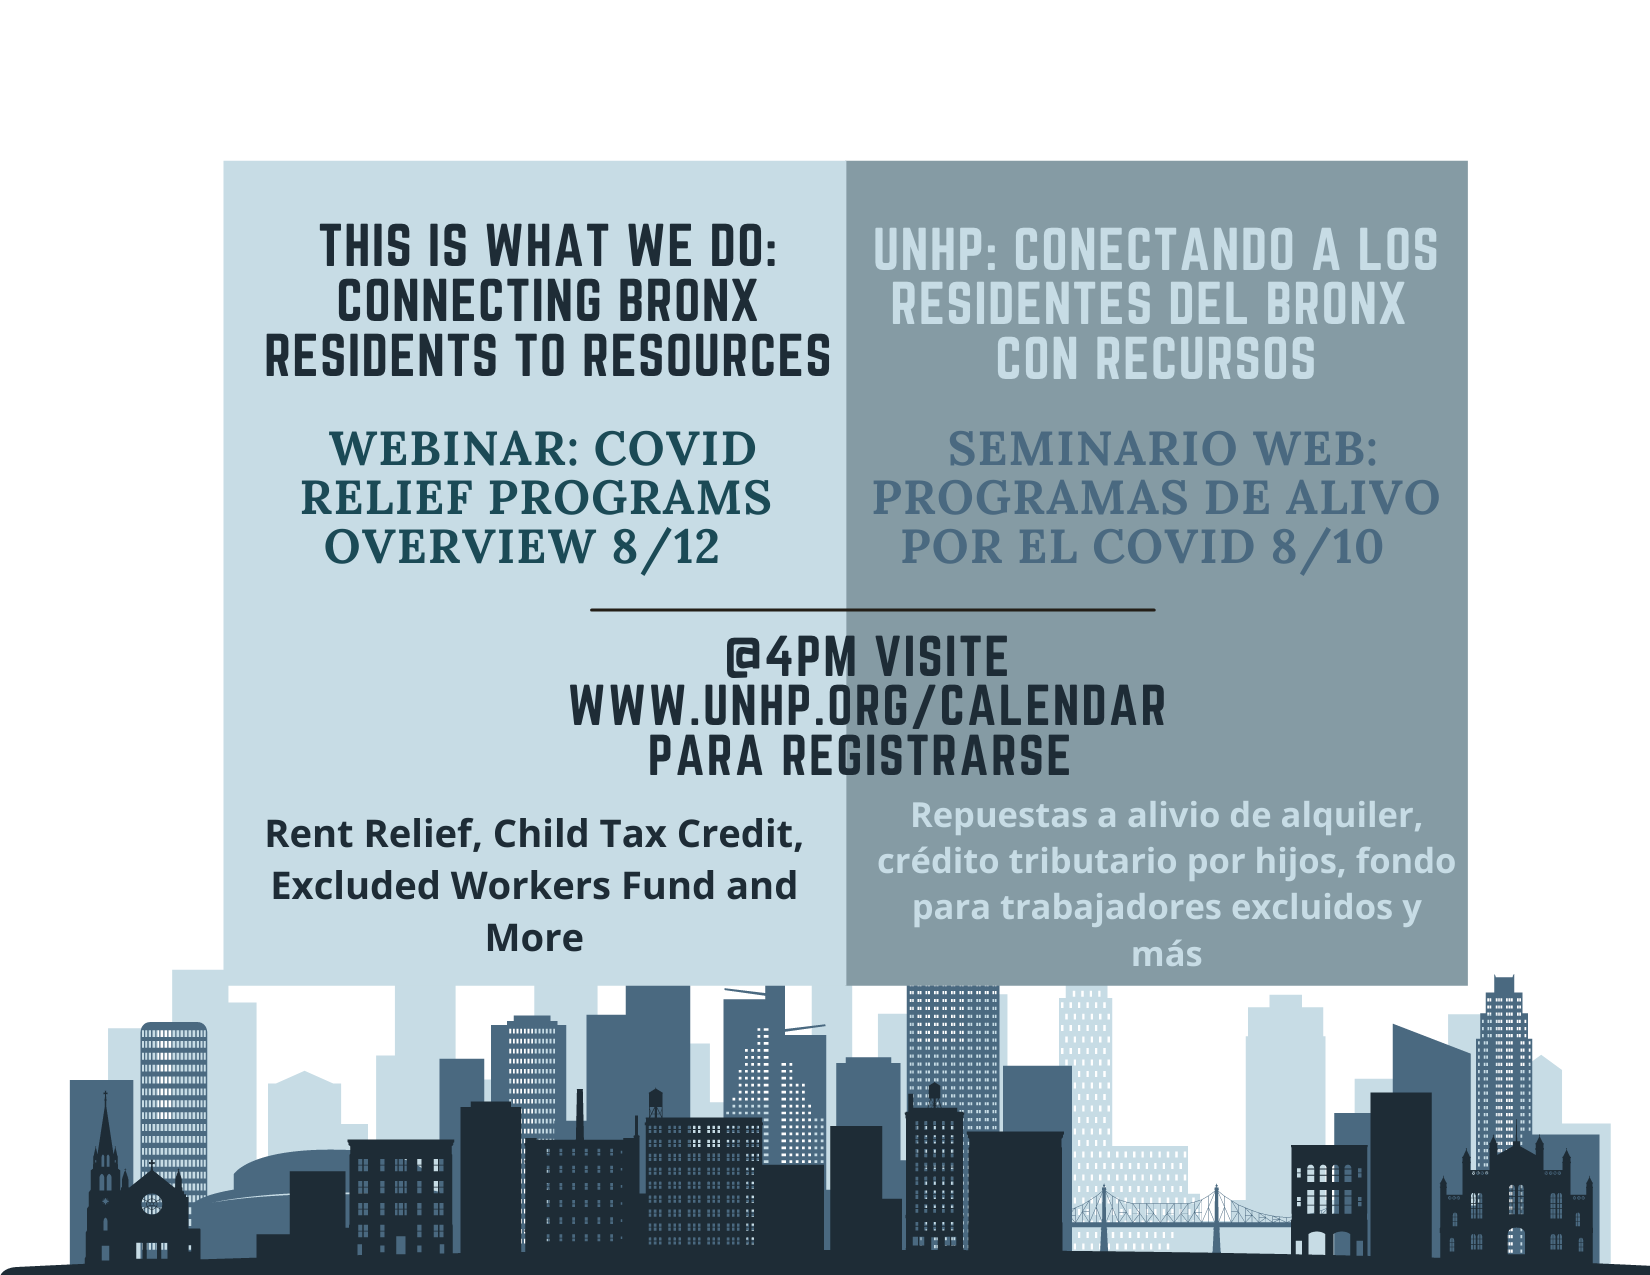 The UNHP Northwest Bronx Resource Center is hosting an open webinar in Spanish on August 10 and English on August 12th to provide an overview of current Covid relief programs including the Advanced Child Tax Credit, Emergency Rental Assistance, and the Excluded Workers Program. Jumelia Abrahamson will lead the overview and NWBRC bilingual staff will be available to answer questions, schedule appointments, and provide any needed referrals. Please share with anyone who may benefit from these programs.